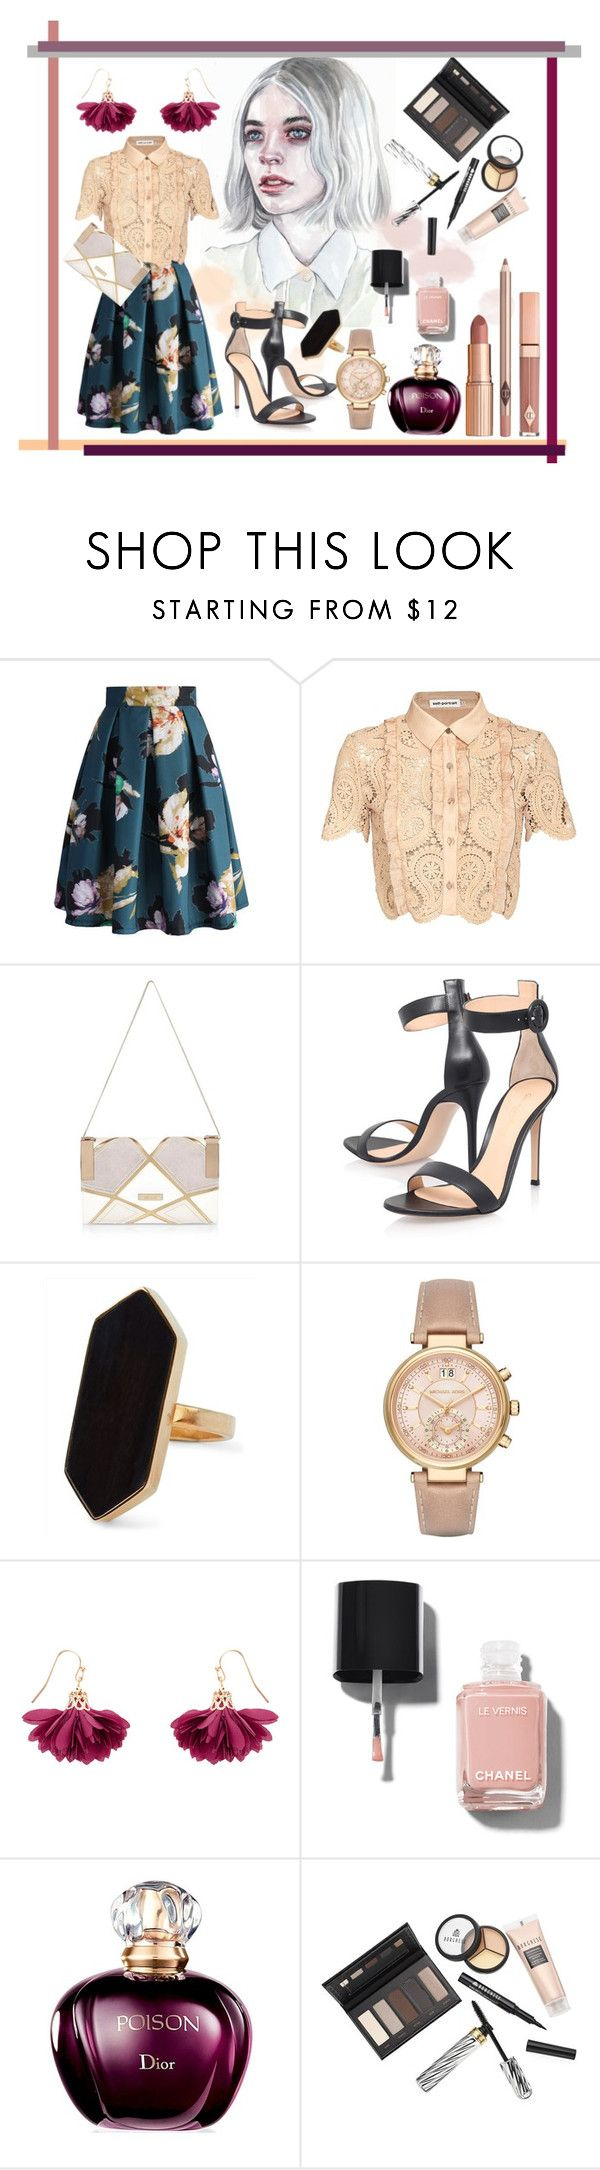 """""""Blushed"""" by karimaputri on Polyvore featuring Chicwish, self-portrait, River Island, Gianvito Rossi, Jaeger, Michael Kors, Accessorize, Chanel, Borghese and Dolce Vita"""